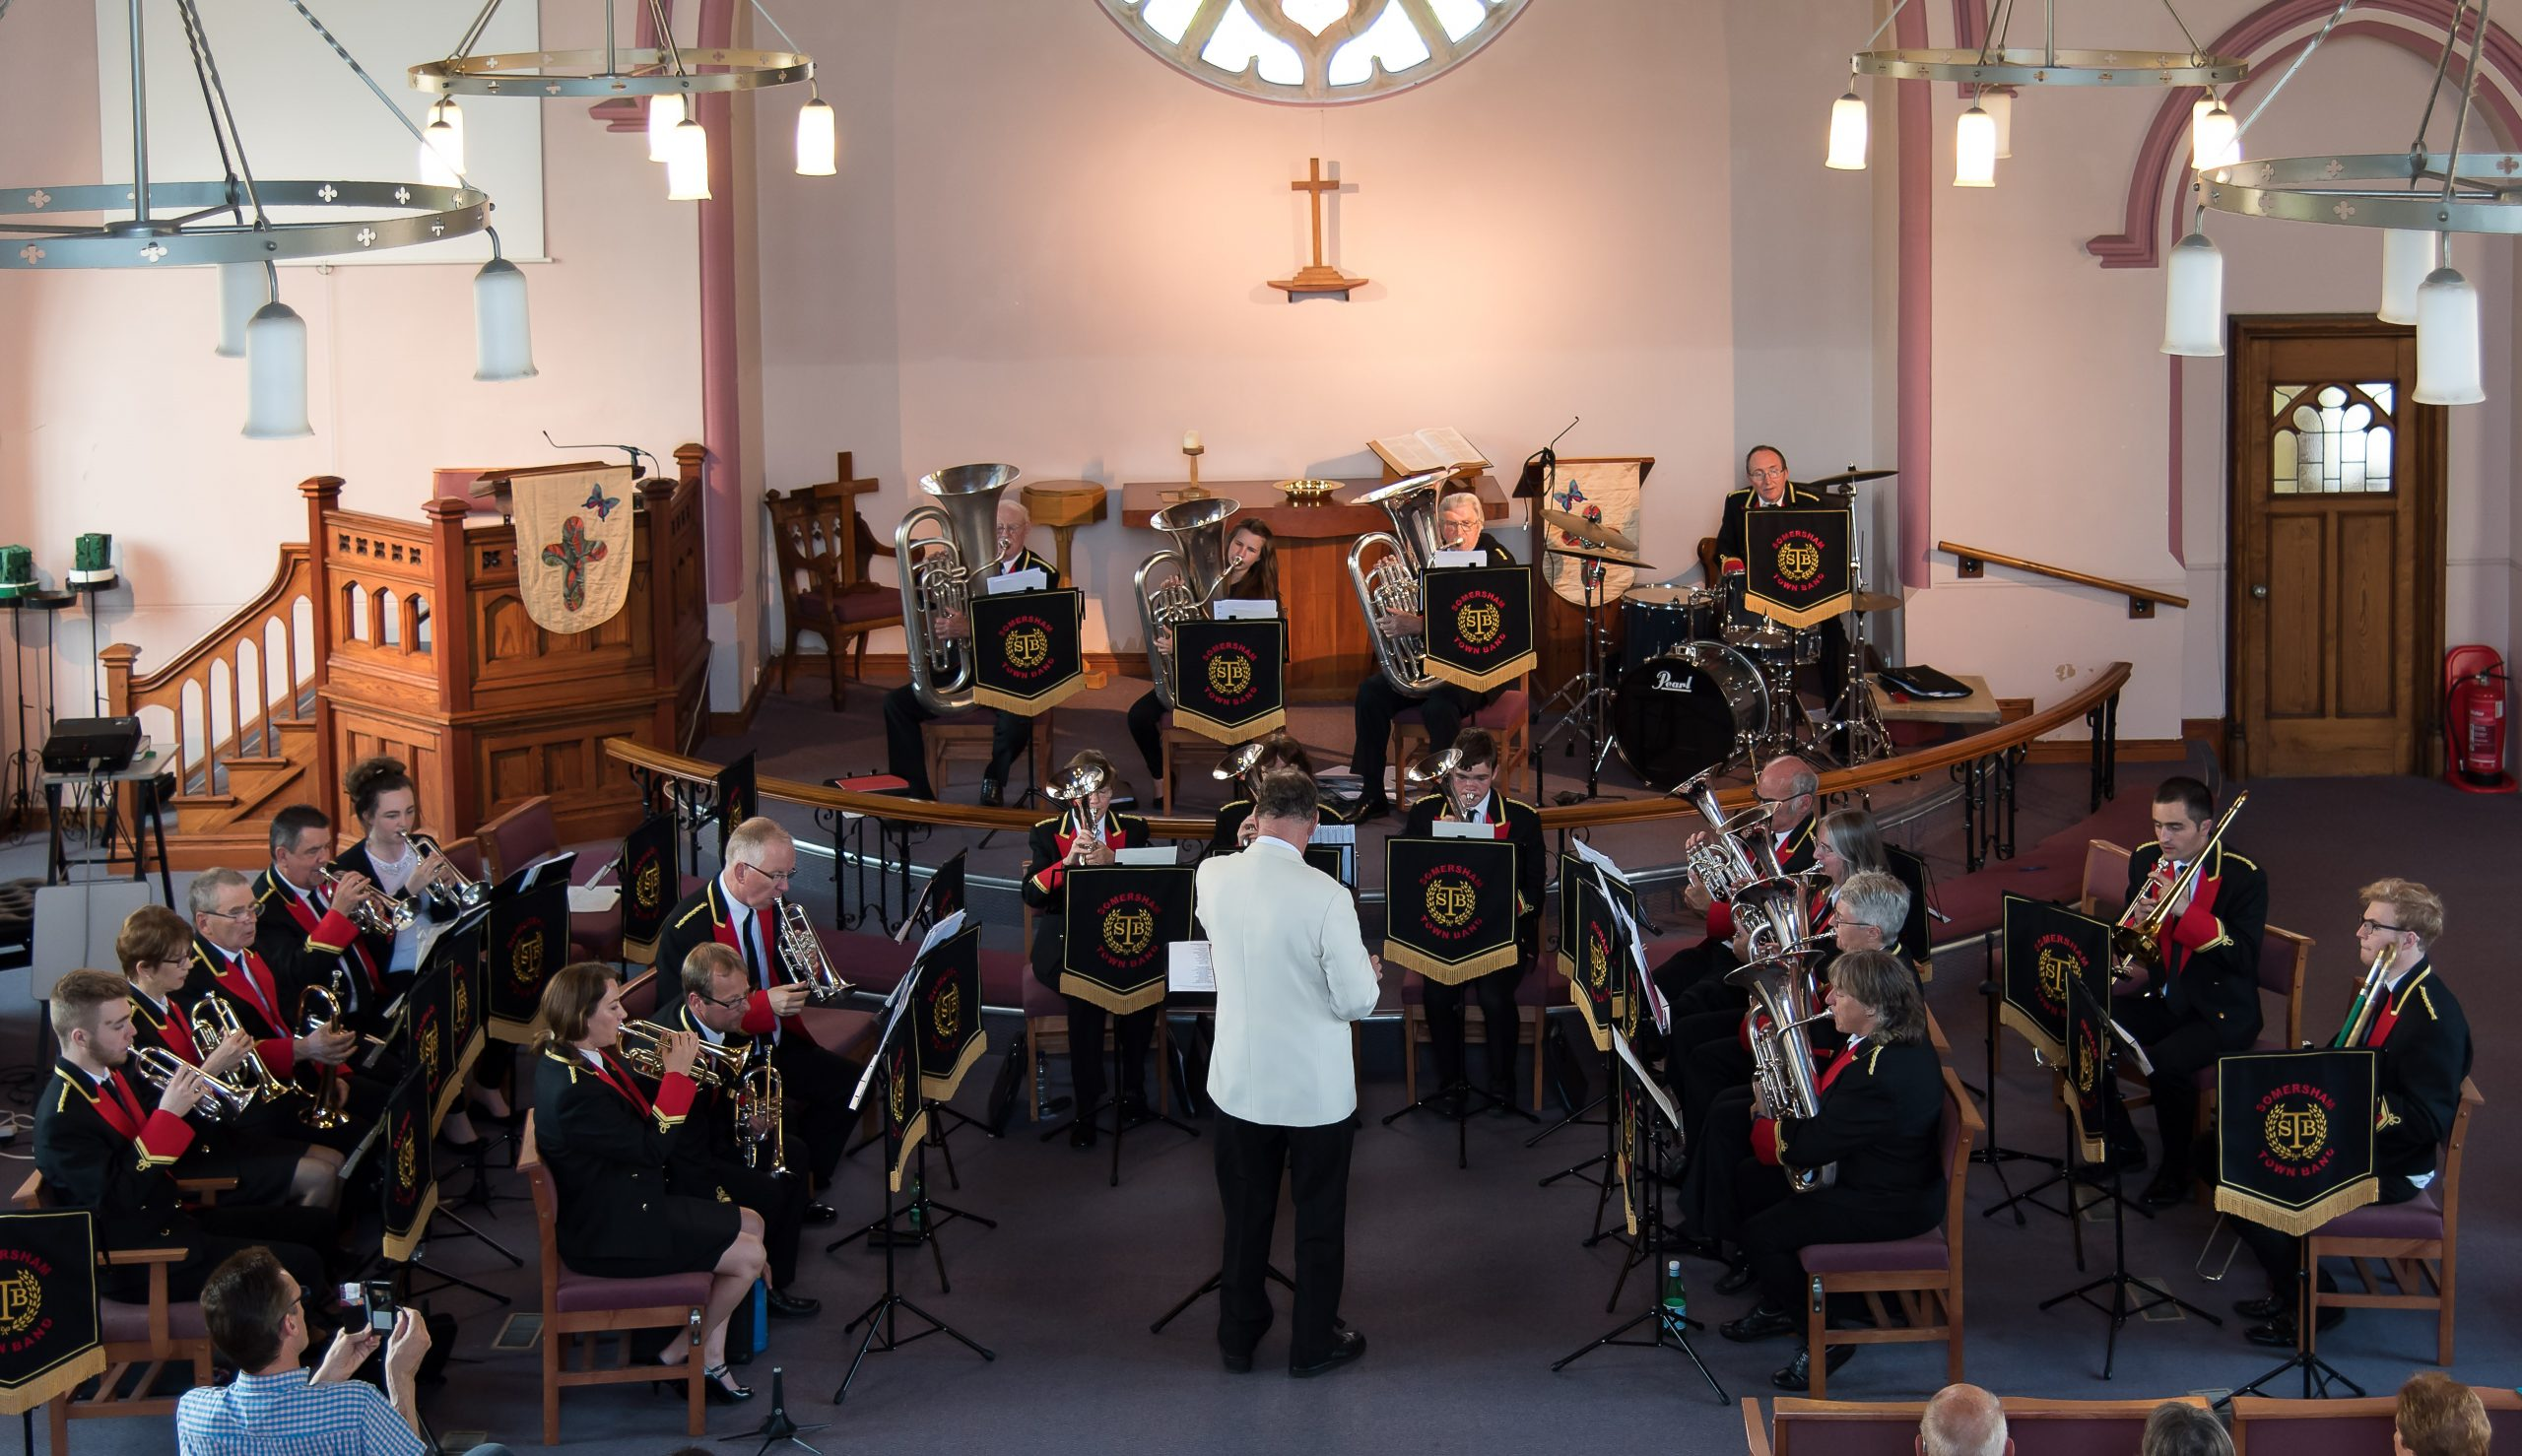 WELCOME TO THE HOME OF THE SOMERSHAM TOWN BAND